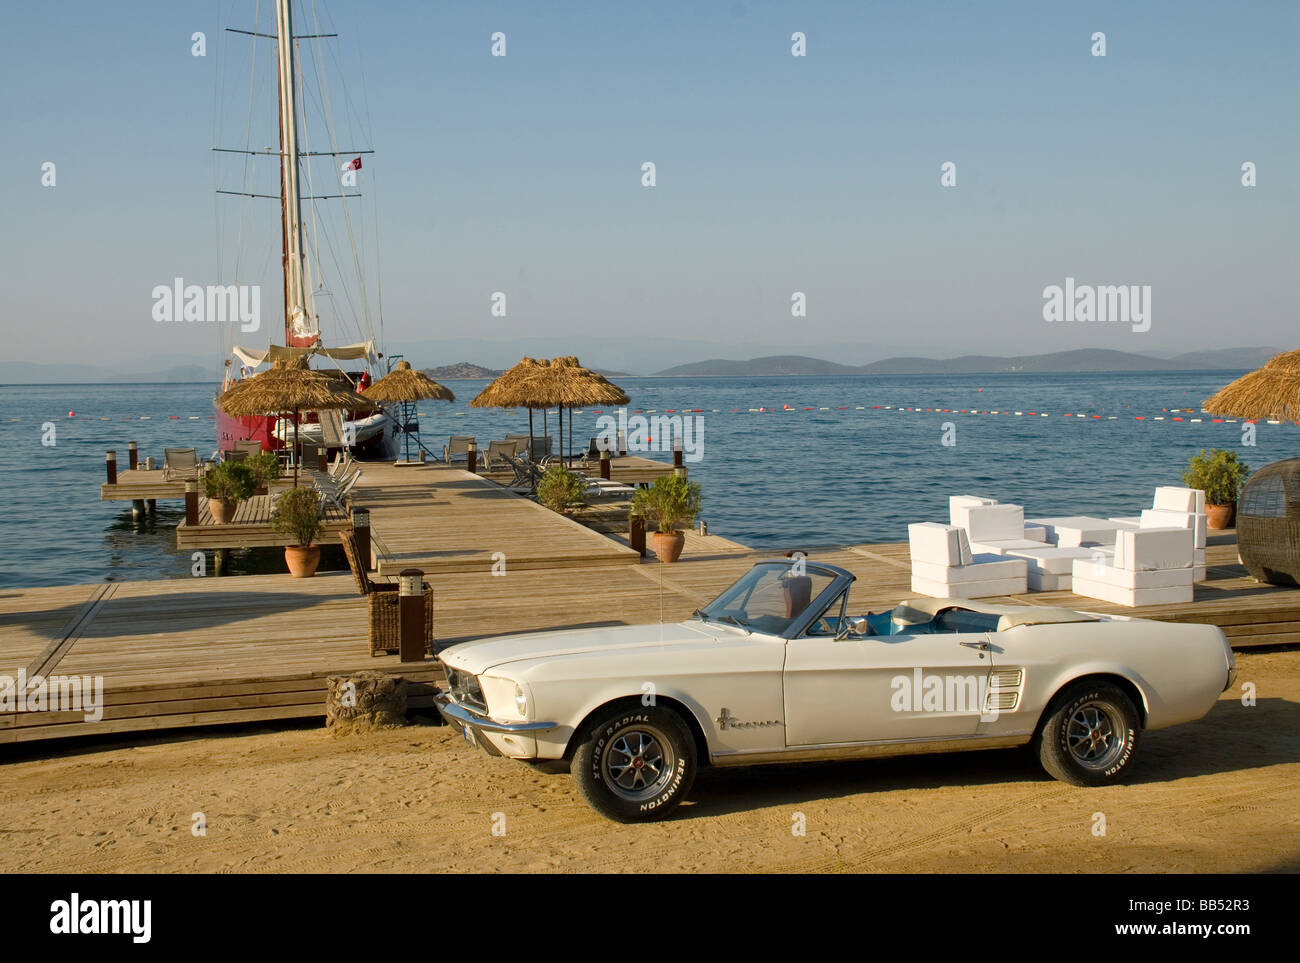 Ford Mustang 1964 Stock Photos Images Alamy Ltd Convertible At The Seaside Image